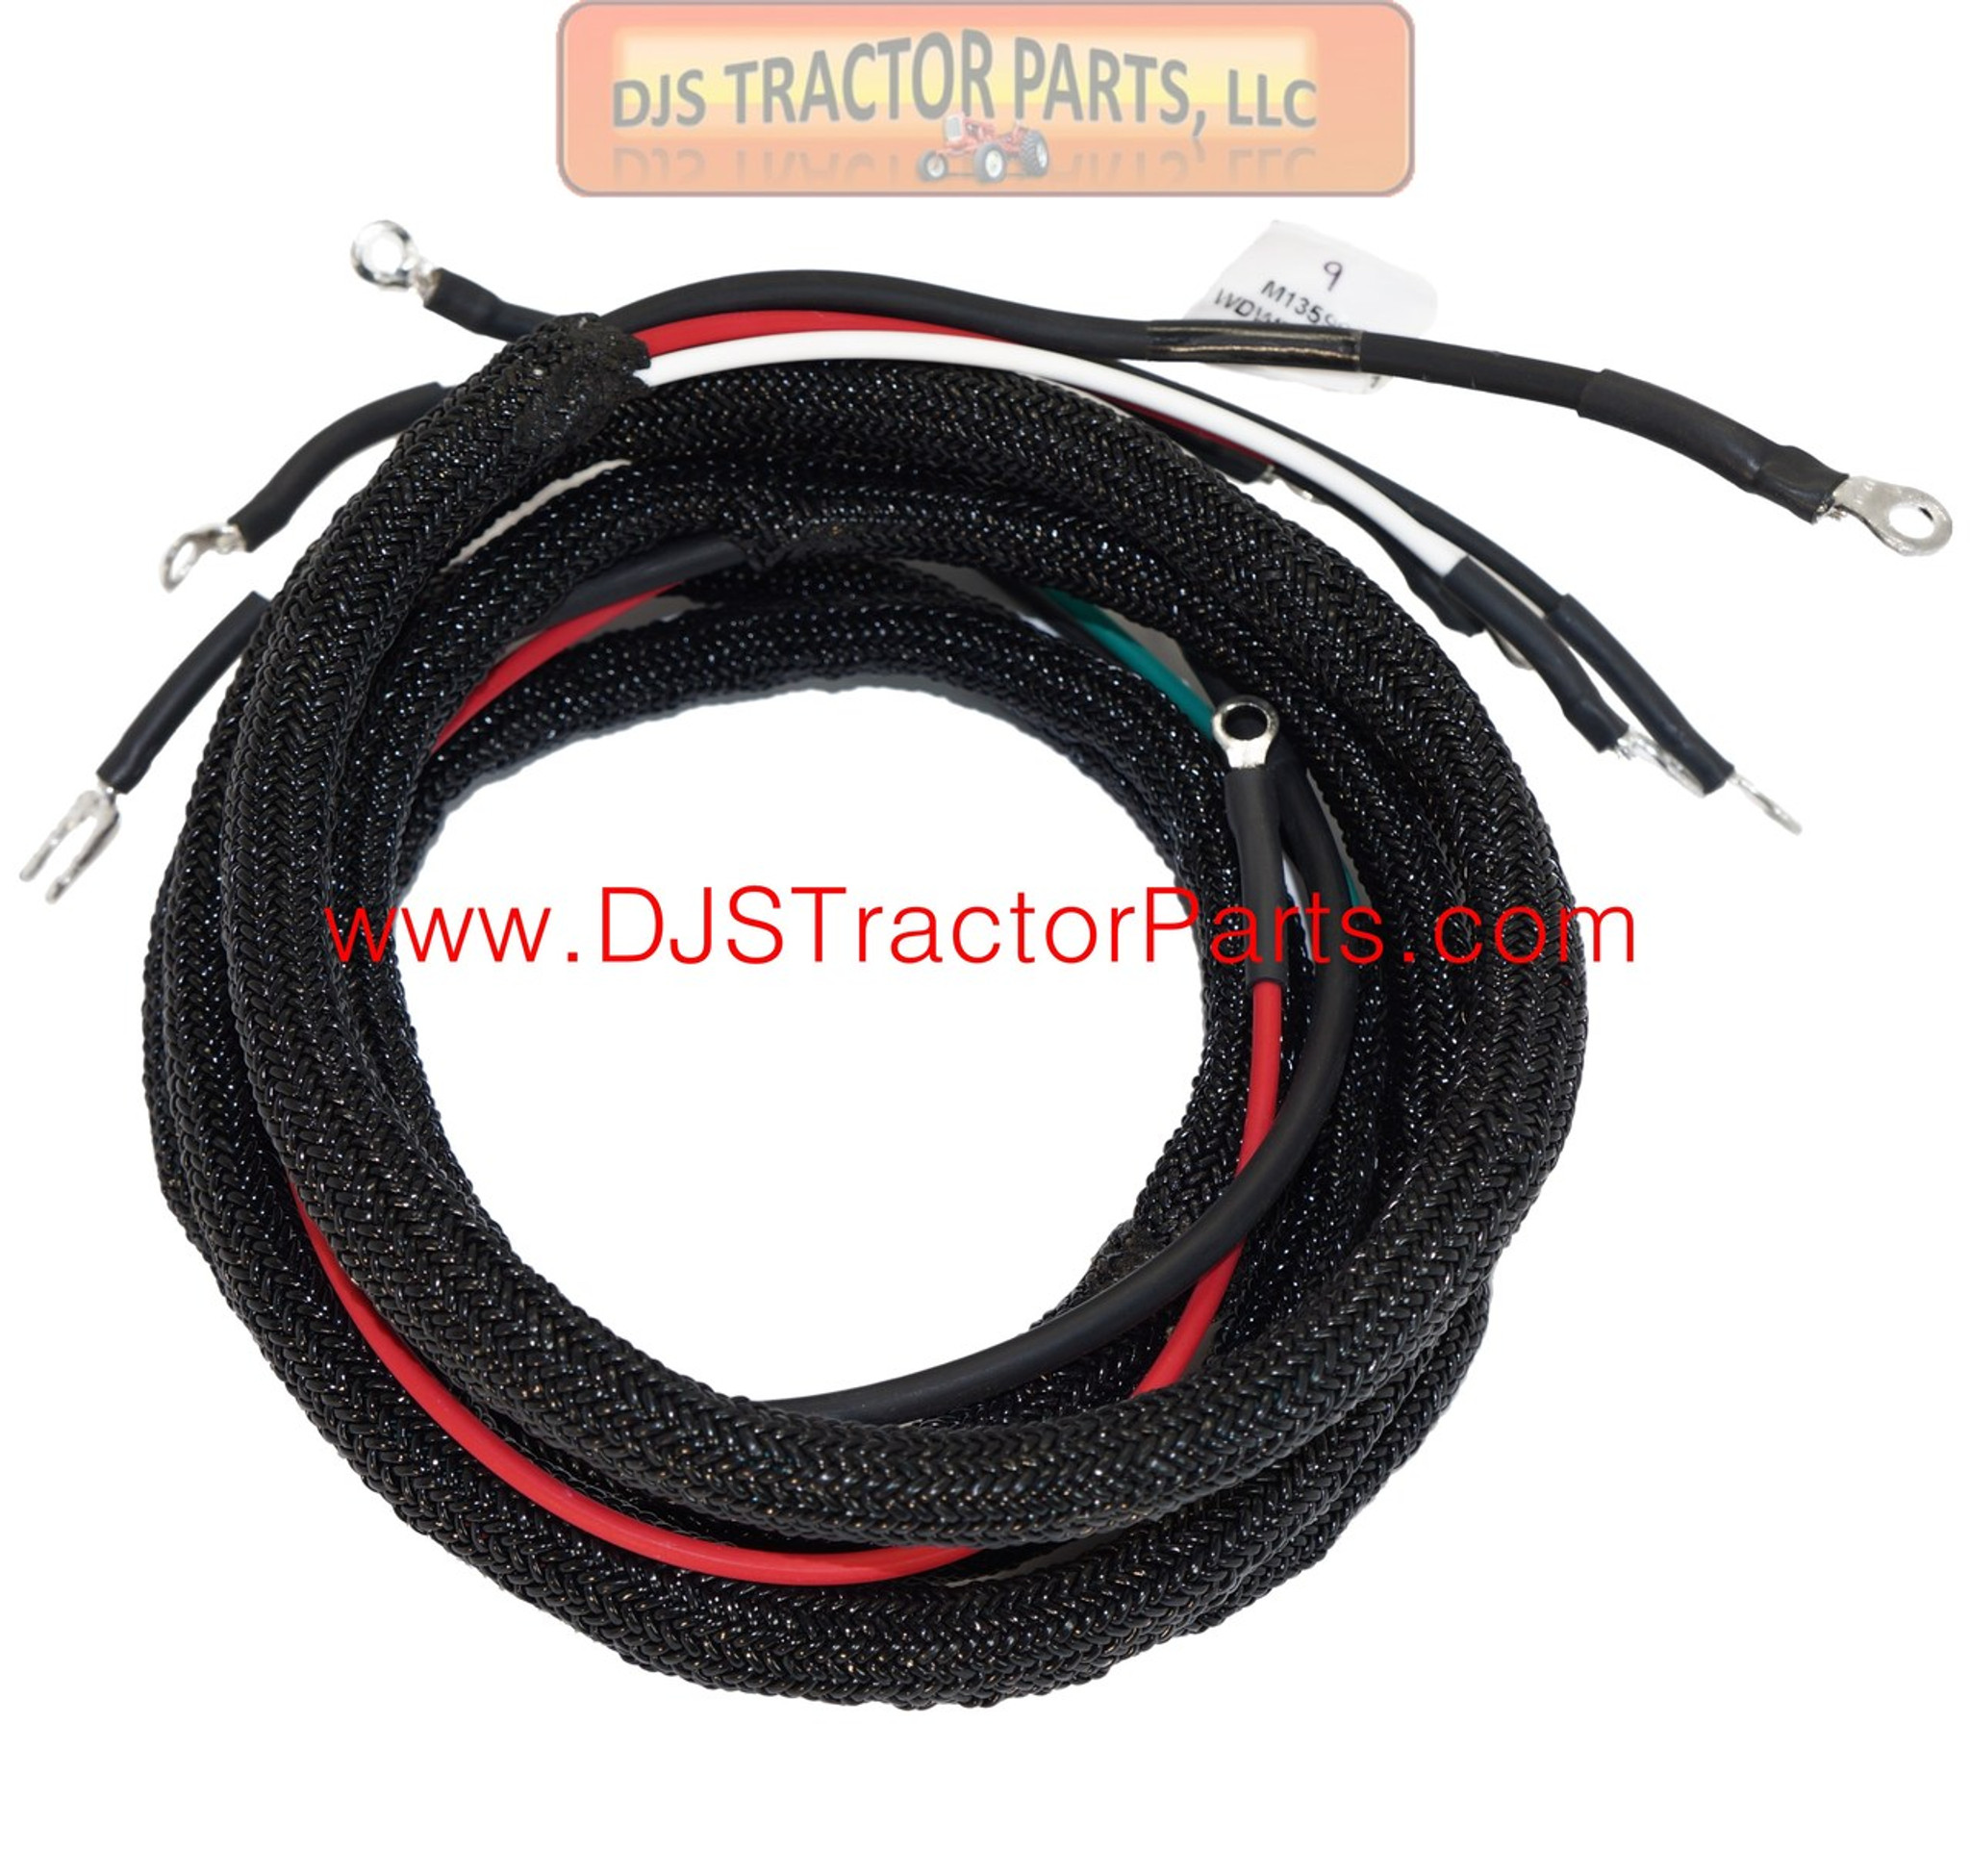 main wiring harness allis chalmers wd wd45 acr4766 djs rh stores djstractorparts com allis chalmers wc wiring harness allis chalmers wc wiring harness